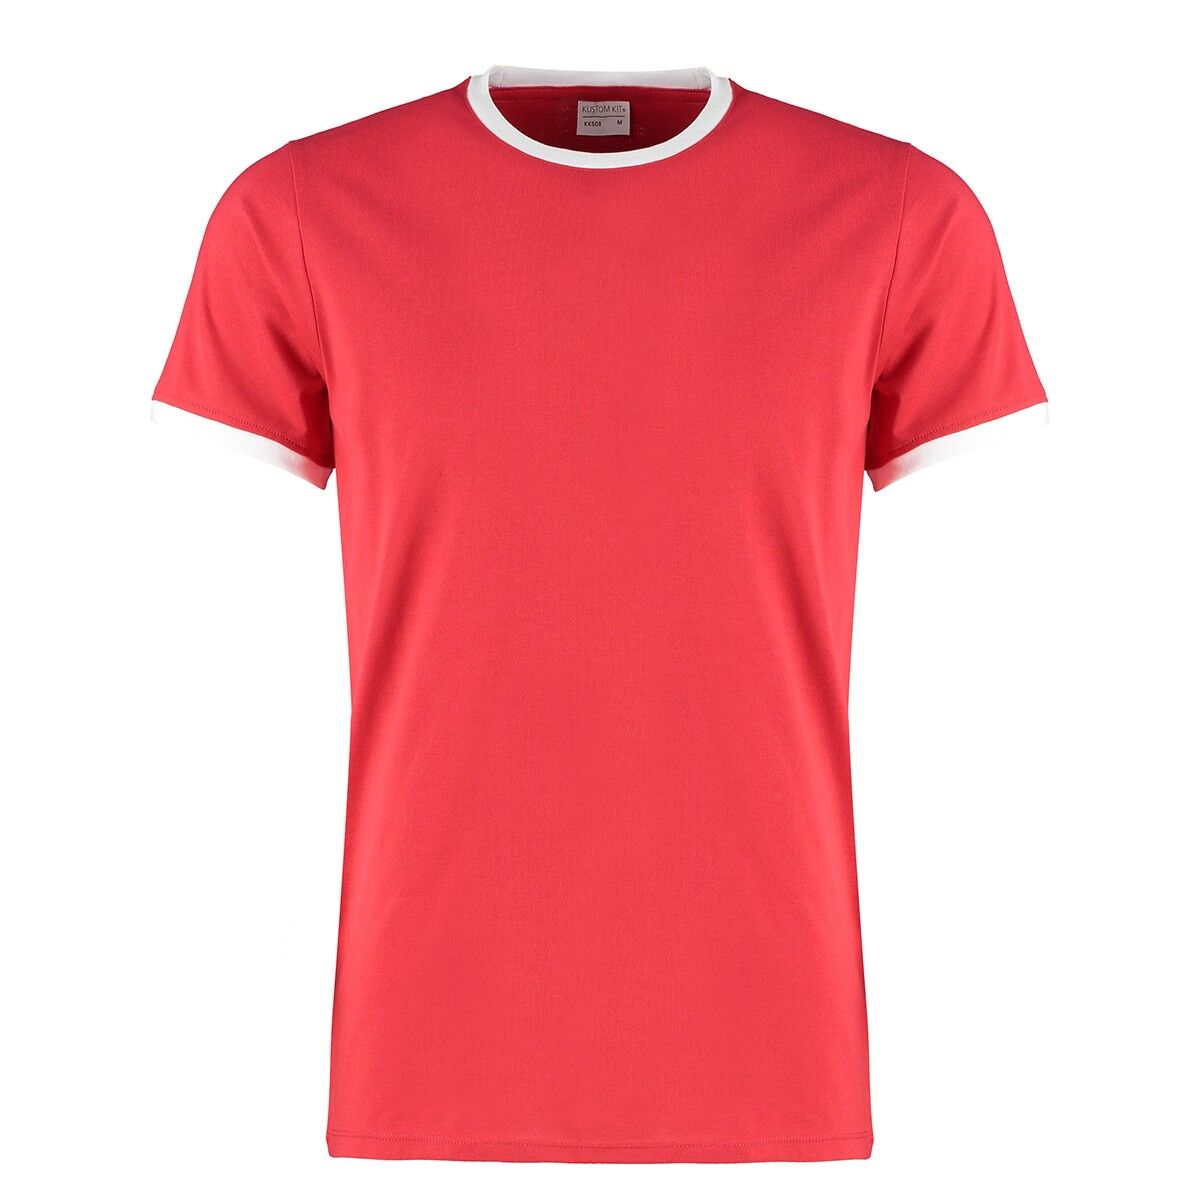 Contrast Ring Tee in Red/White